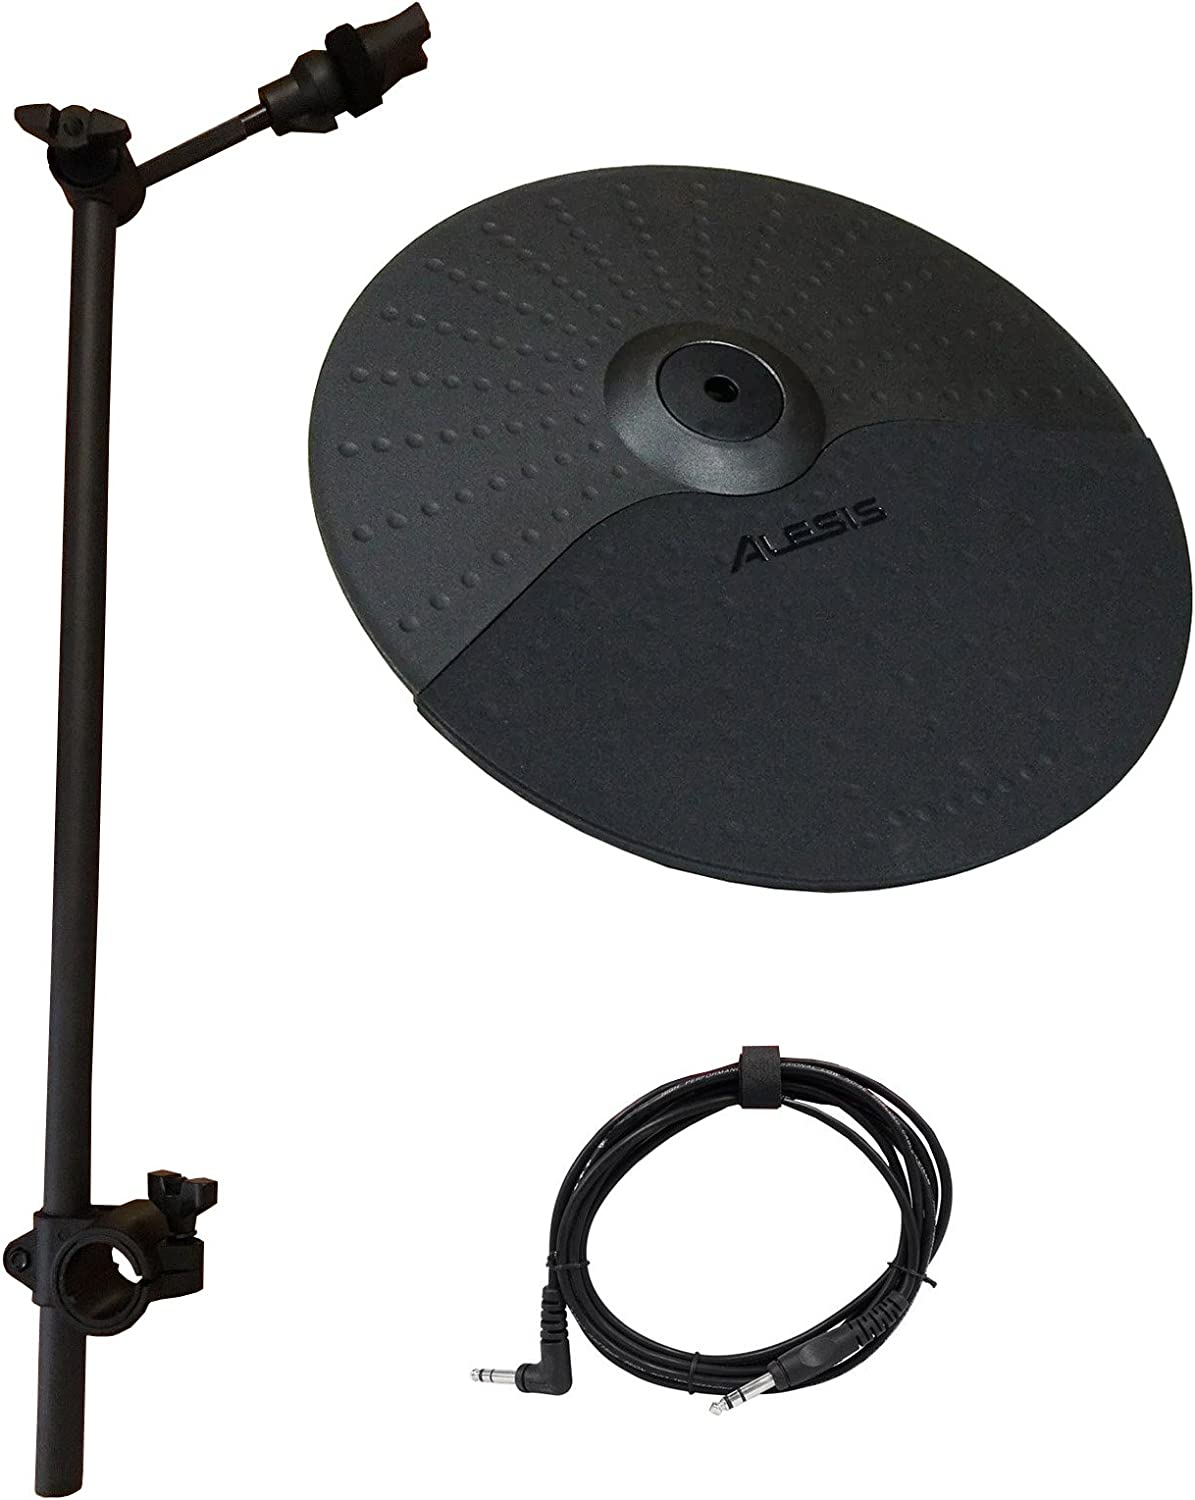 Alesis Nitro Cymbal Expansion Set: 10 Inch Cymbal With Choke, 22In Cymbal Arm, Rack Clamp And 10Ft Trs Cable